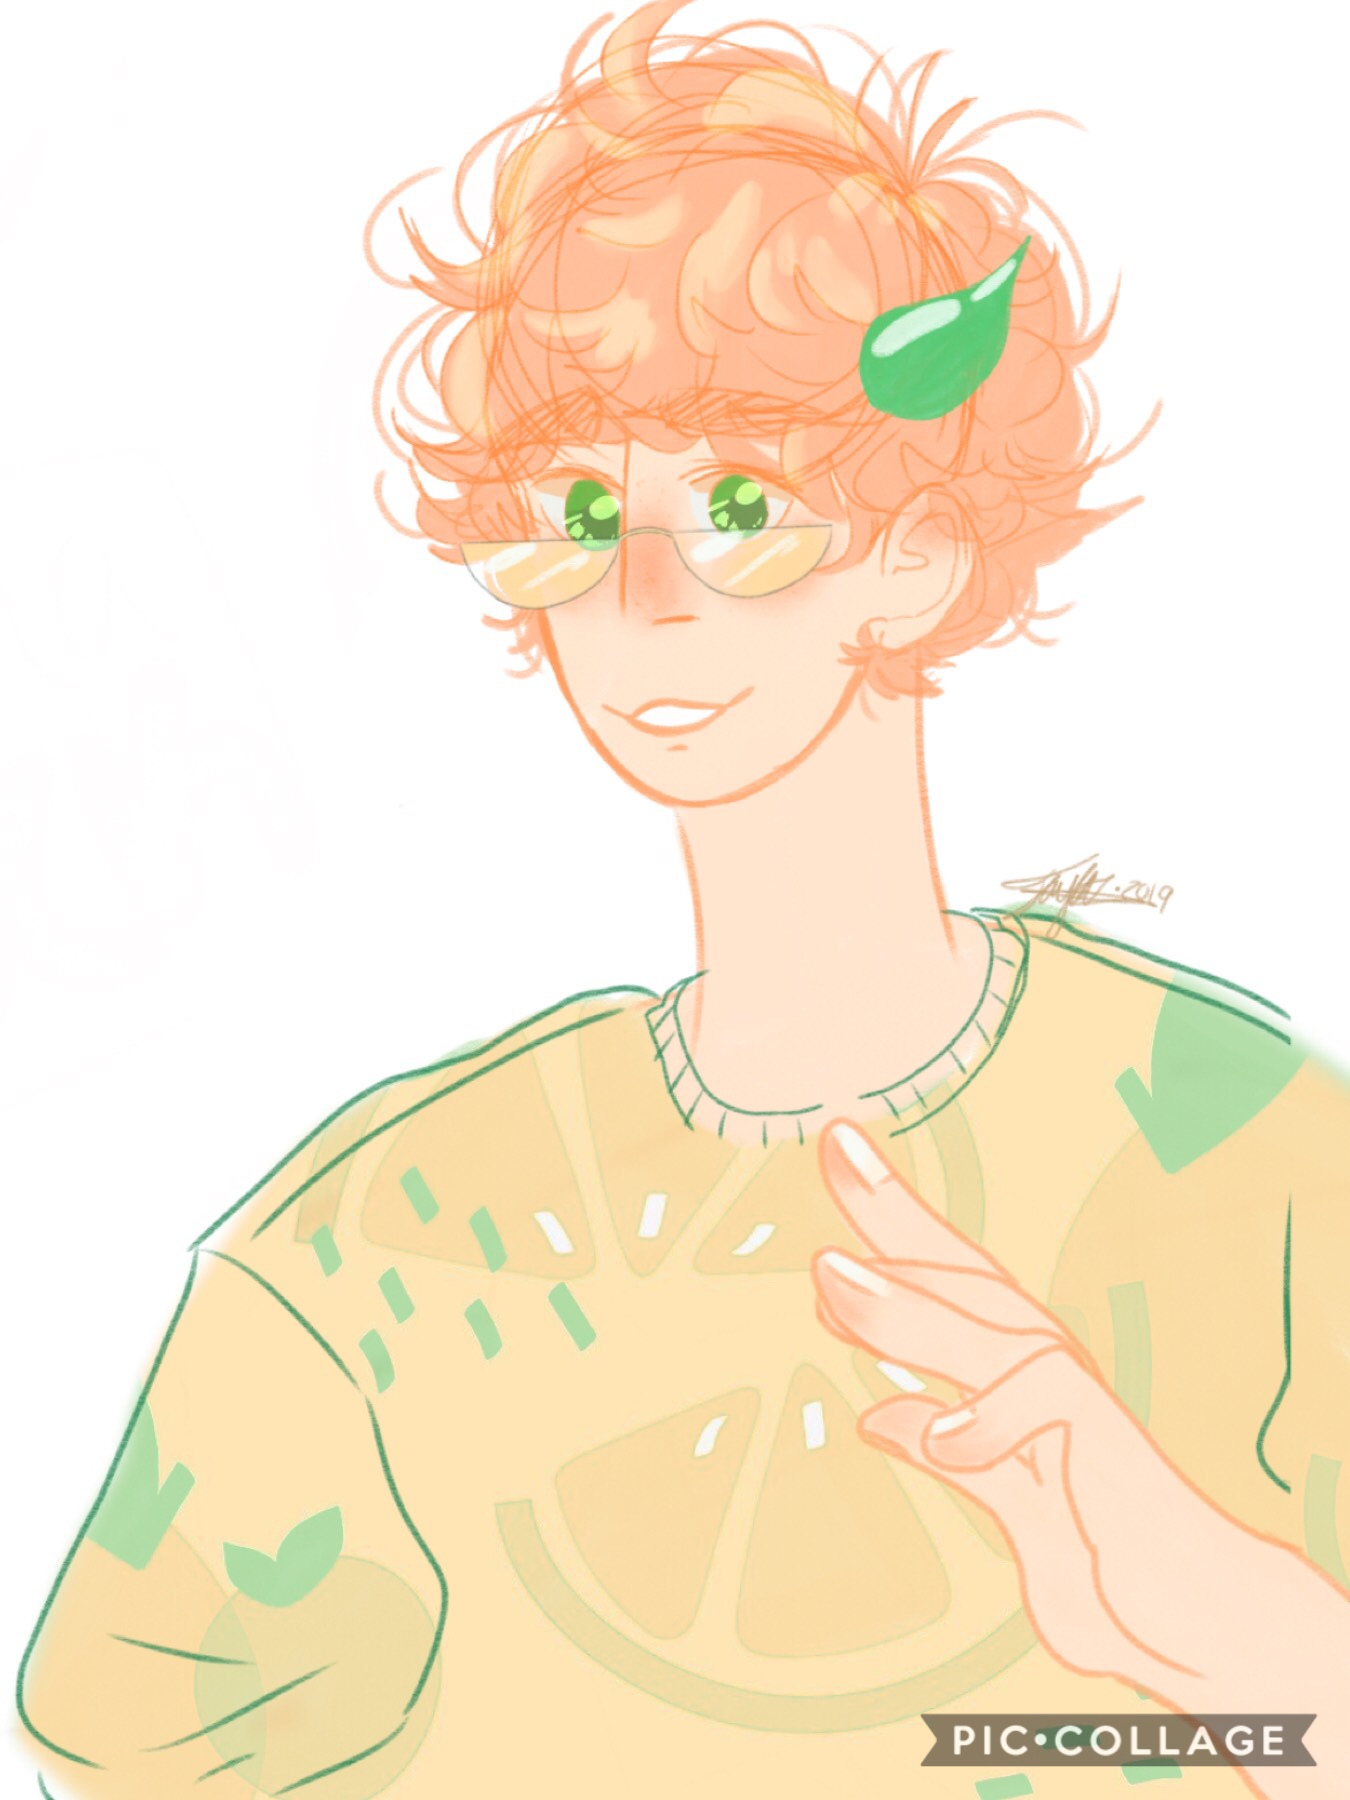 Me and Karol are making characters out of fruit people we saw on Swedish juice boxes at IKEA, and this is my first entry into this universe, His name is Max ((named by Soap) and as you can see, he's an orange. I'll give more info later but i still got mor